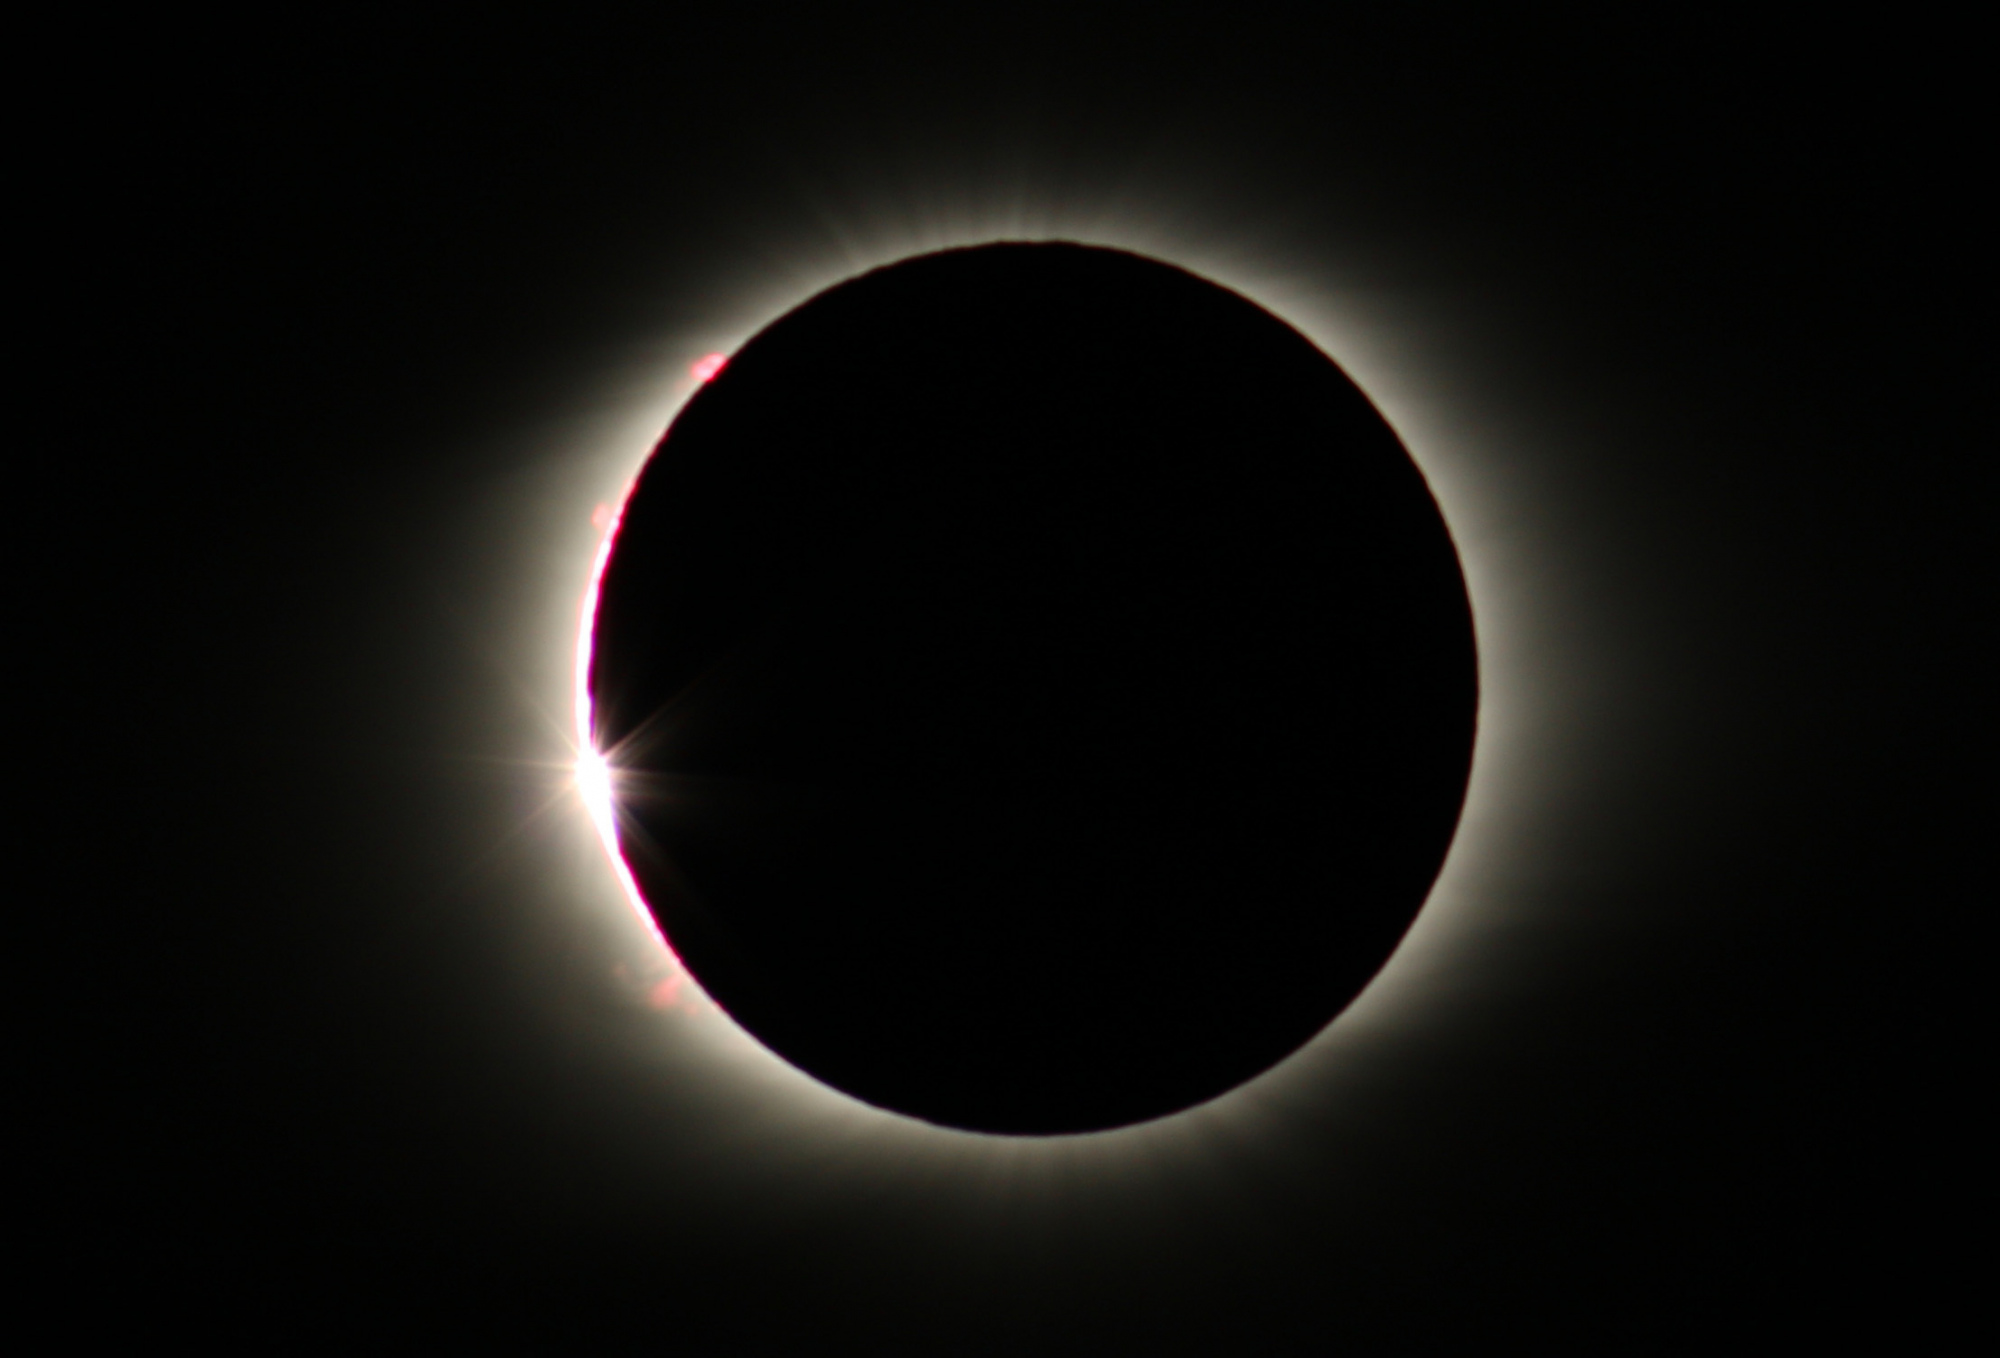 5 eclipse9470B1 send.jpg